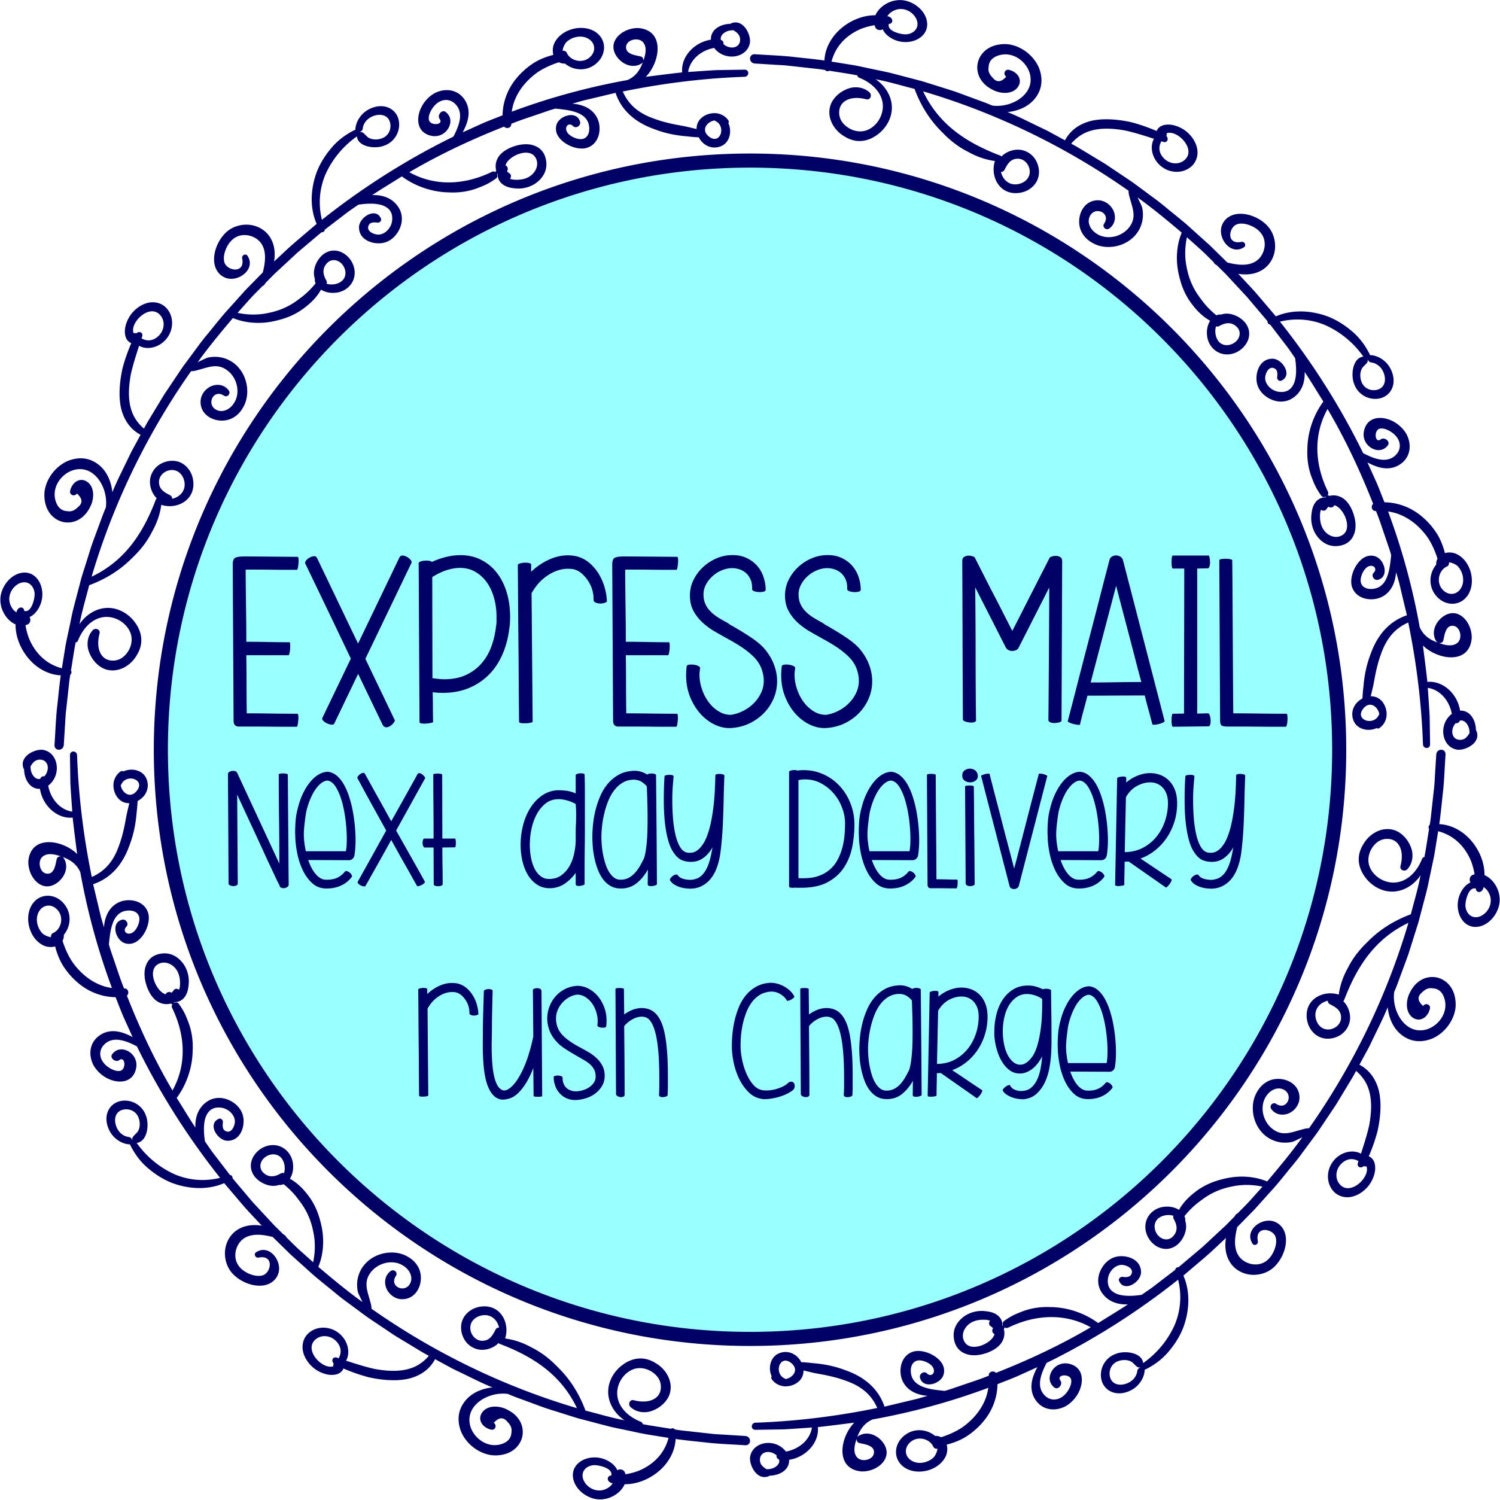 Next day mail